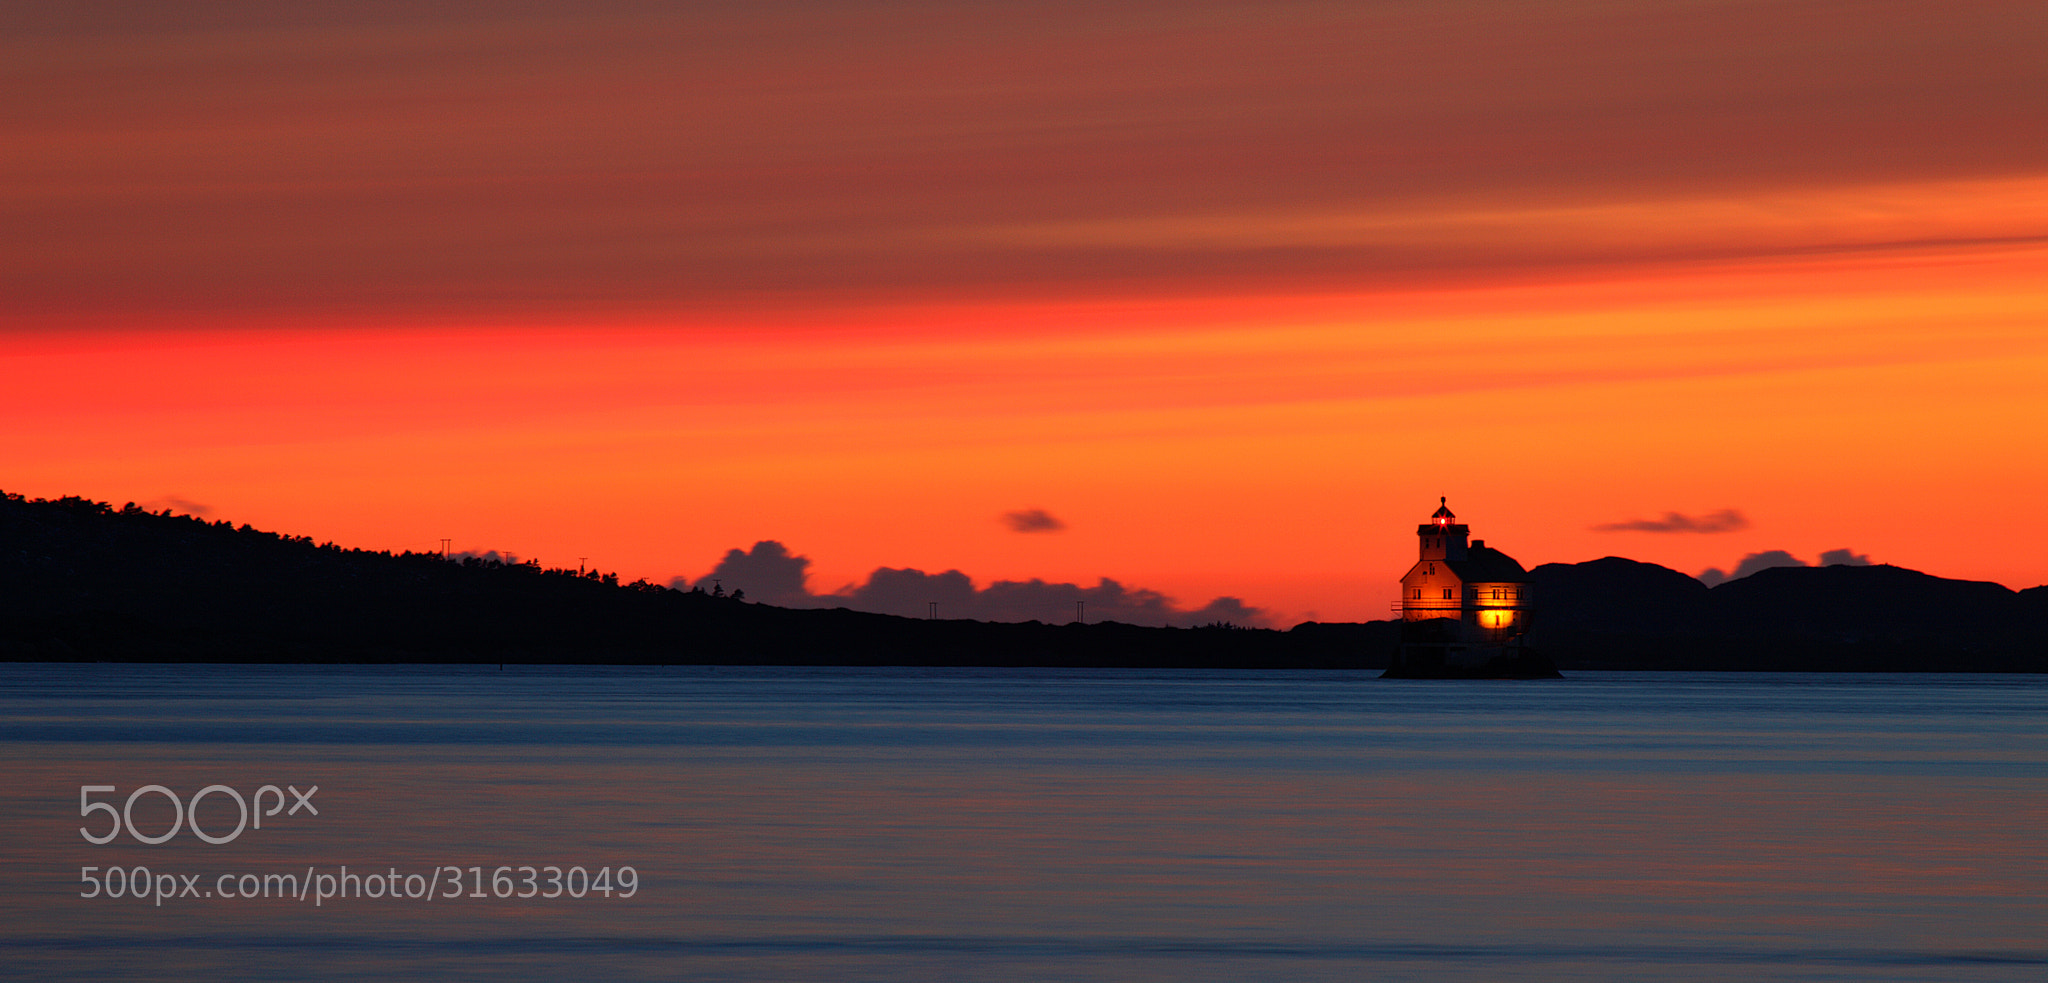 Photograph Lighthouse by Marius Edvardsson on 500px